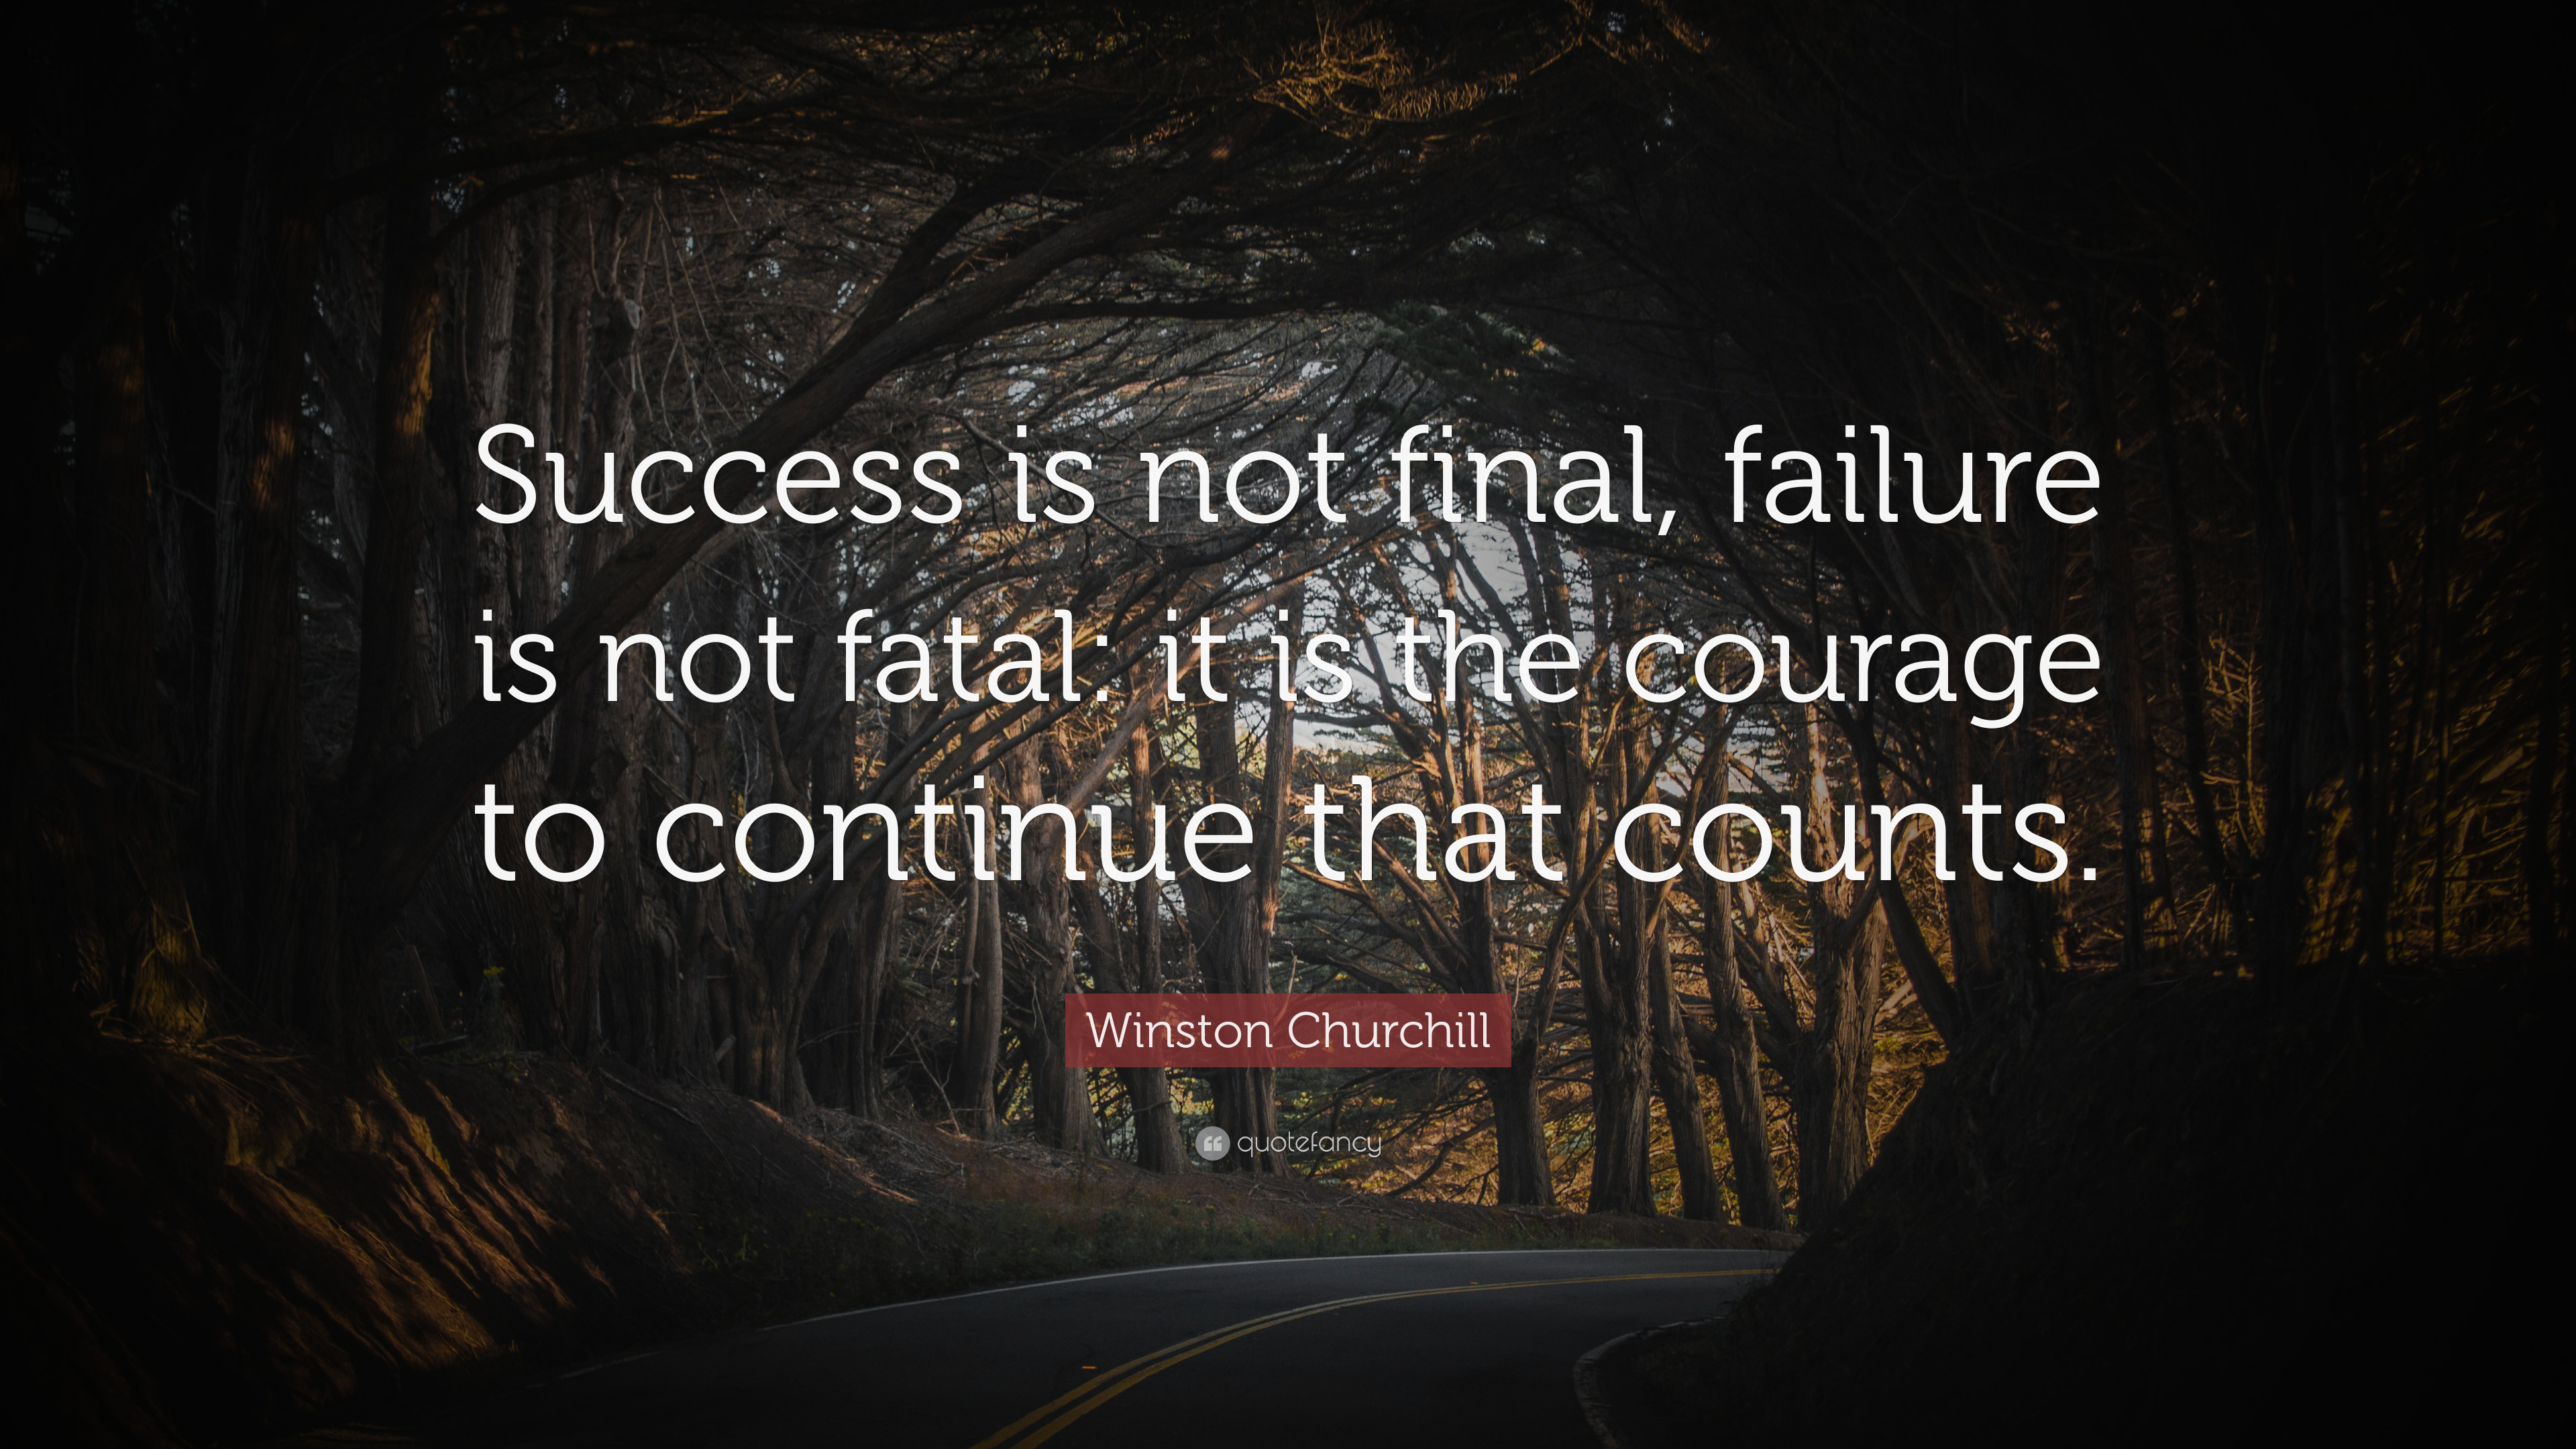 Attitude Girl Hd Wallpaper Free Download Winston Churchill Quote Success Is Not Final Failure Is